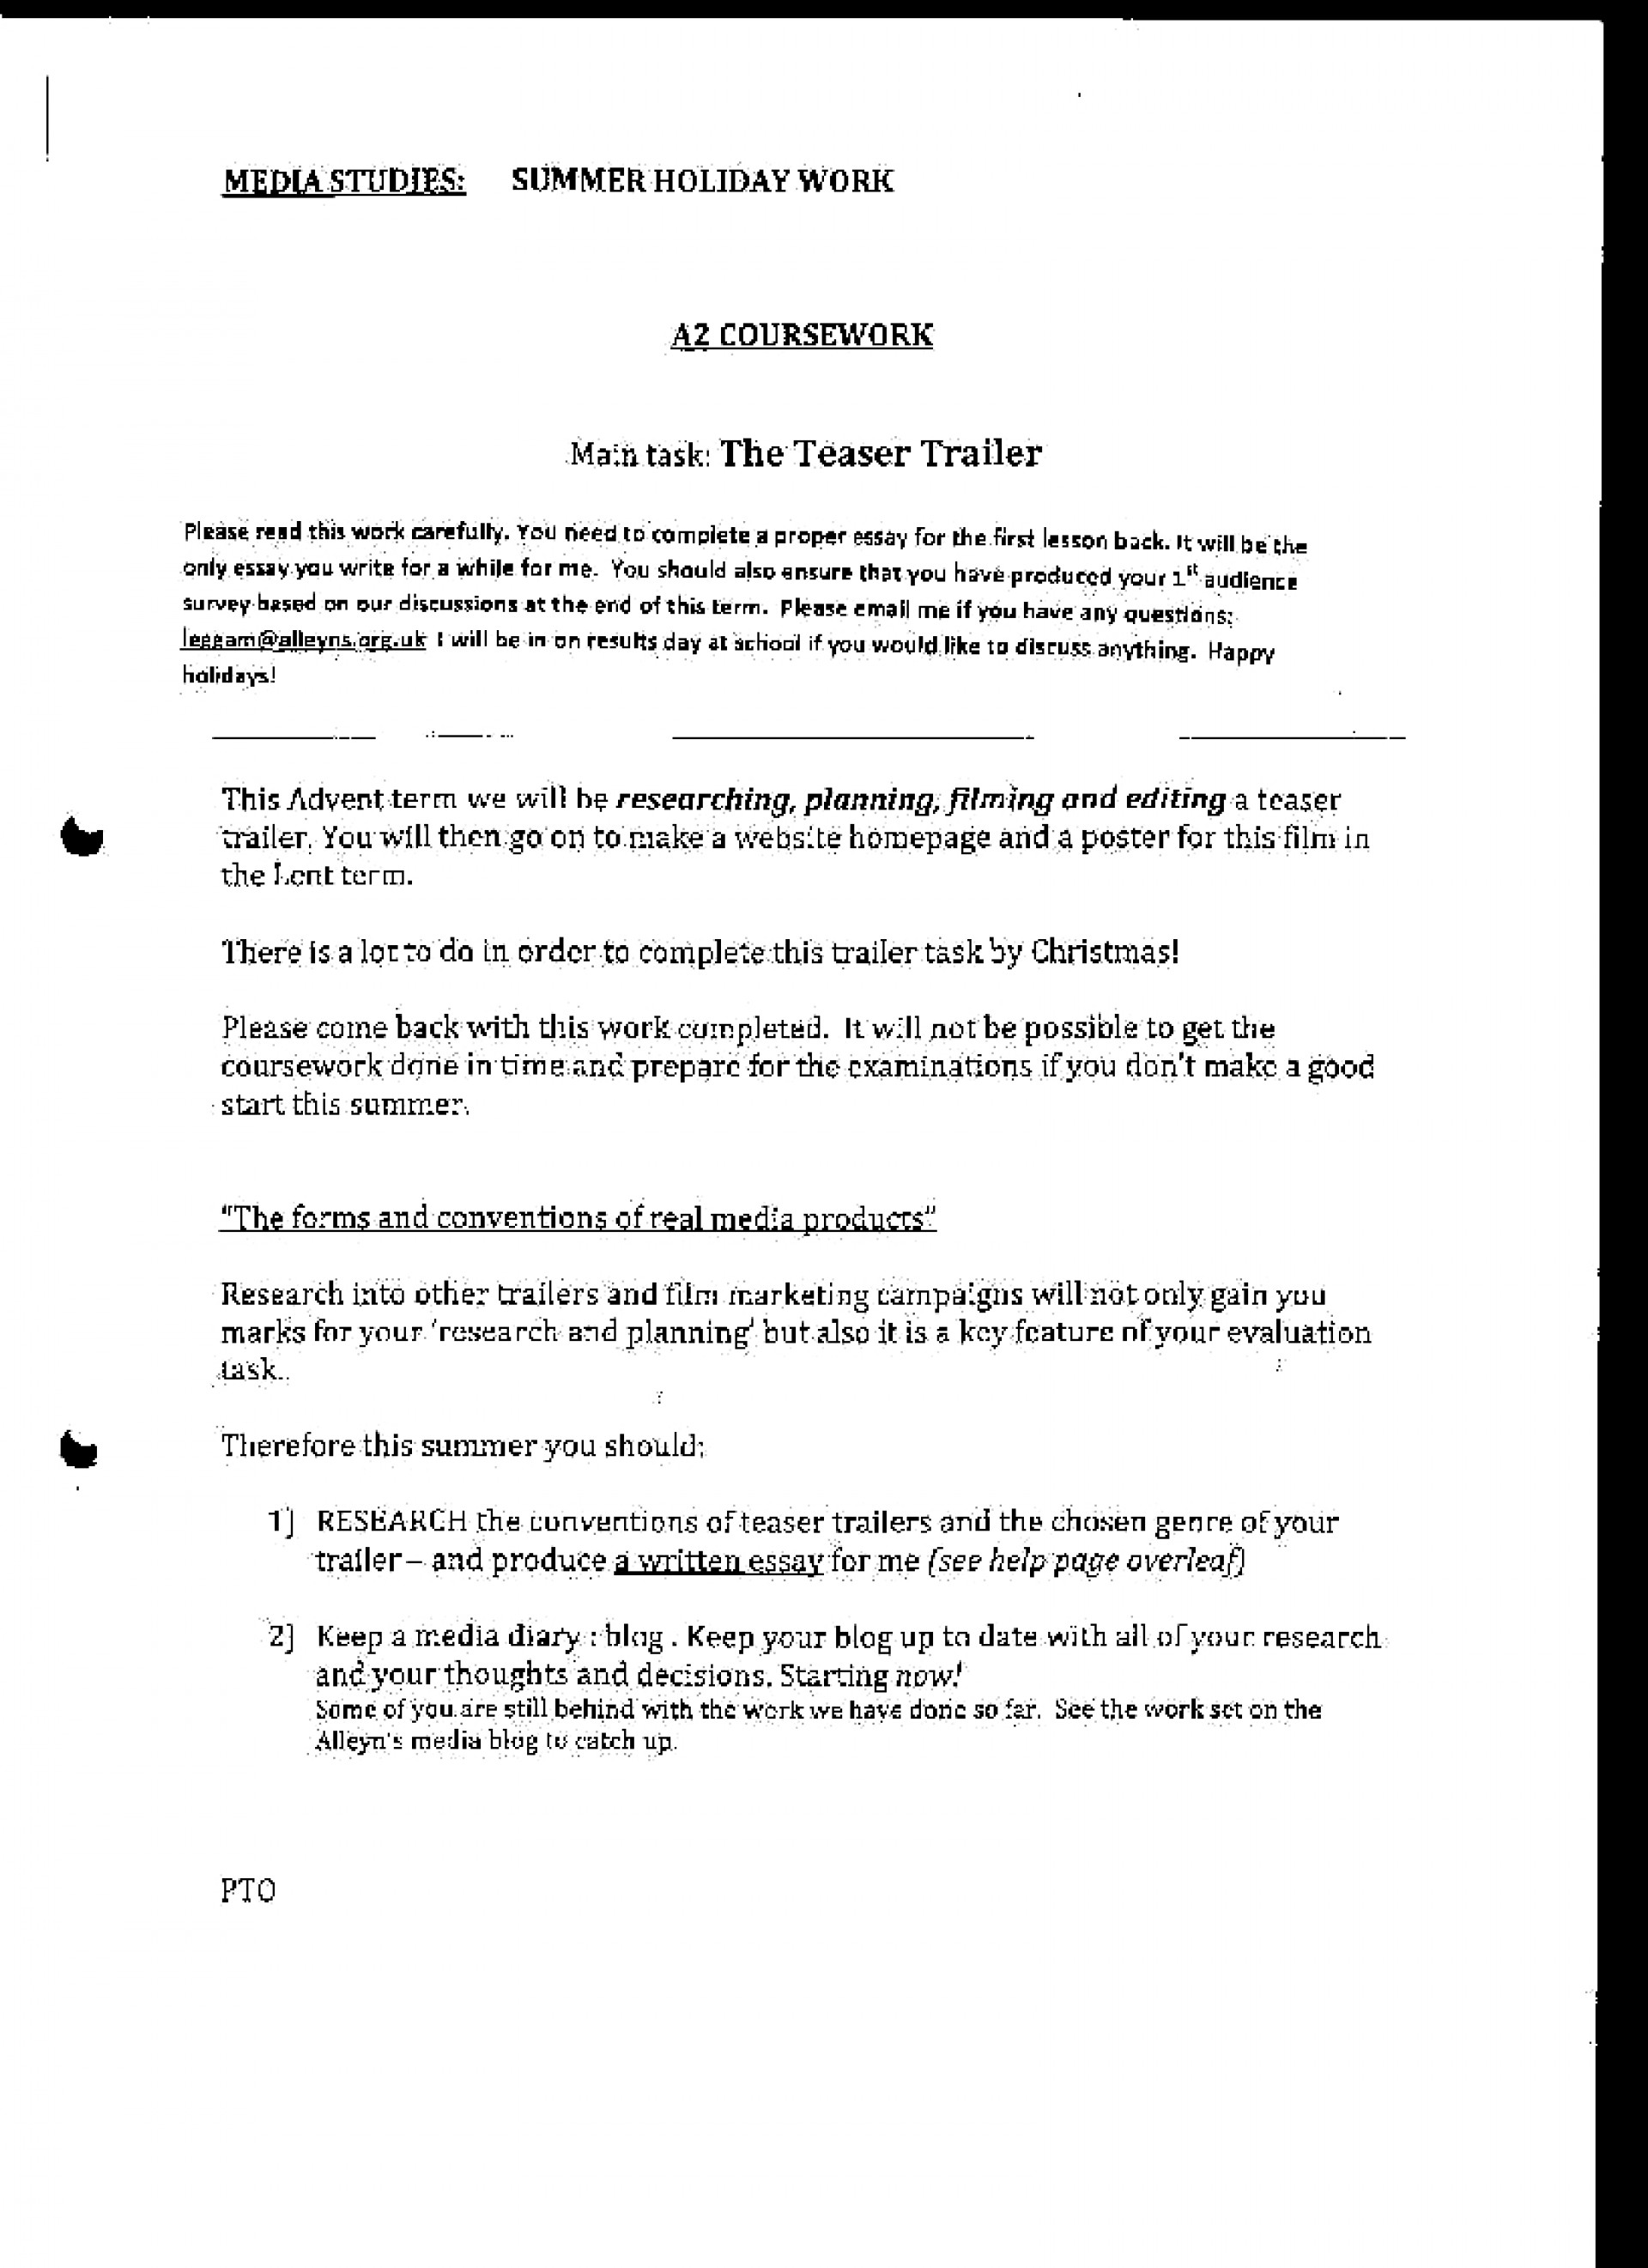 023 Essay Example Yr2b122bholiday2bwork2bpage2b1 Summer Frightening Vacation In Hindi 300-400 Words On For Class 2 Students Urdu How I Spend My 1920